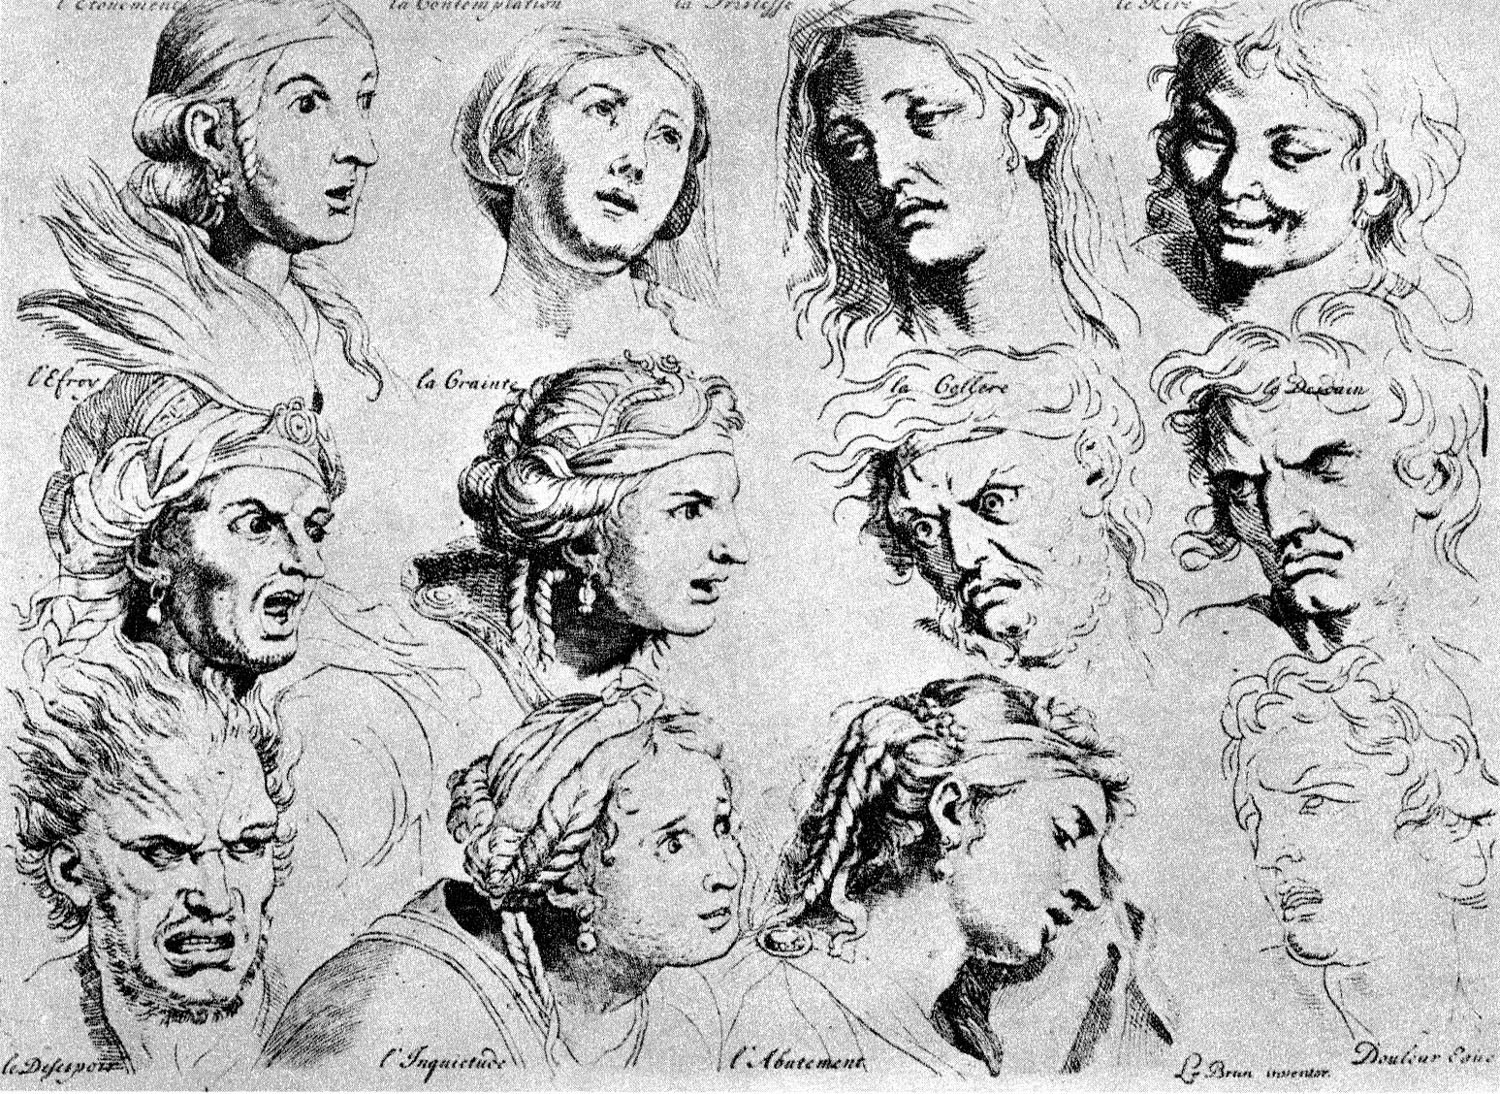 Sketches of emotional facial expressions, Charles Le Brun, 1698. Photo credit: Pubblic Domain.